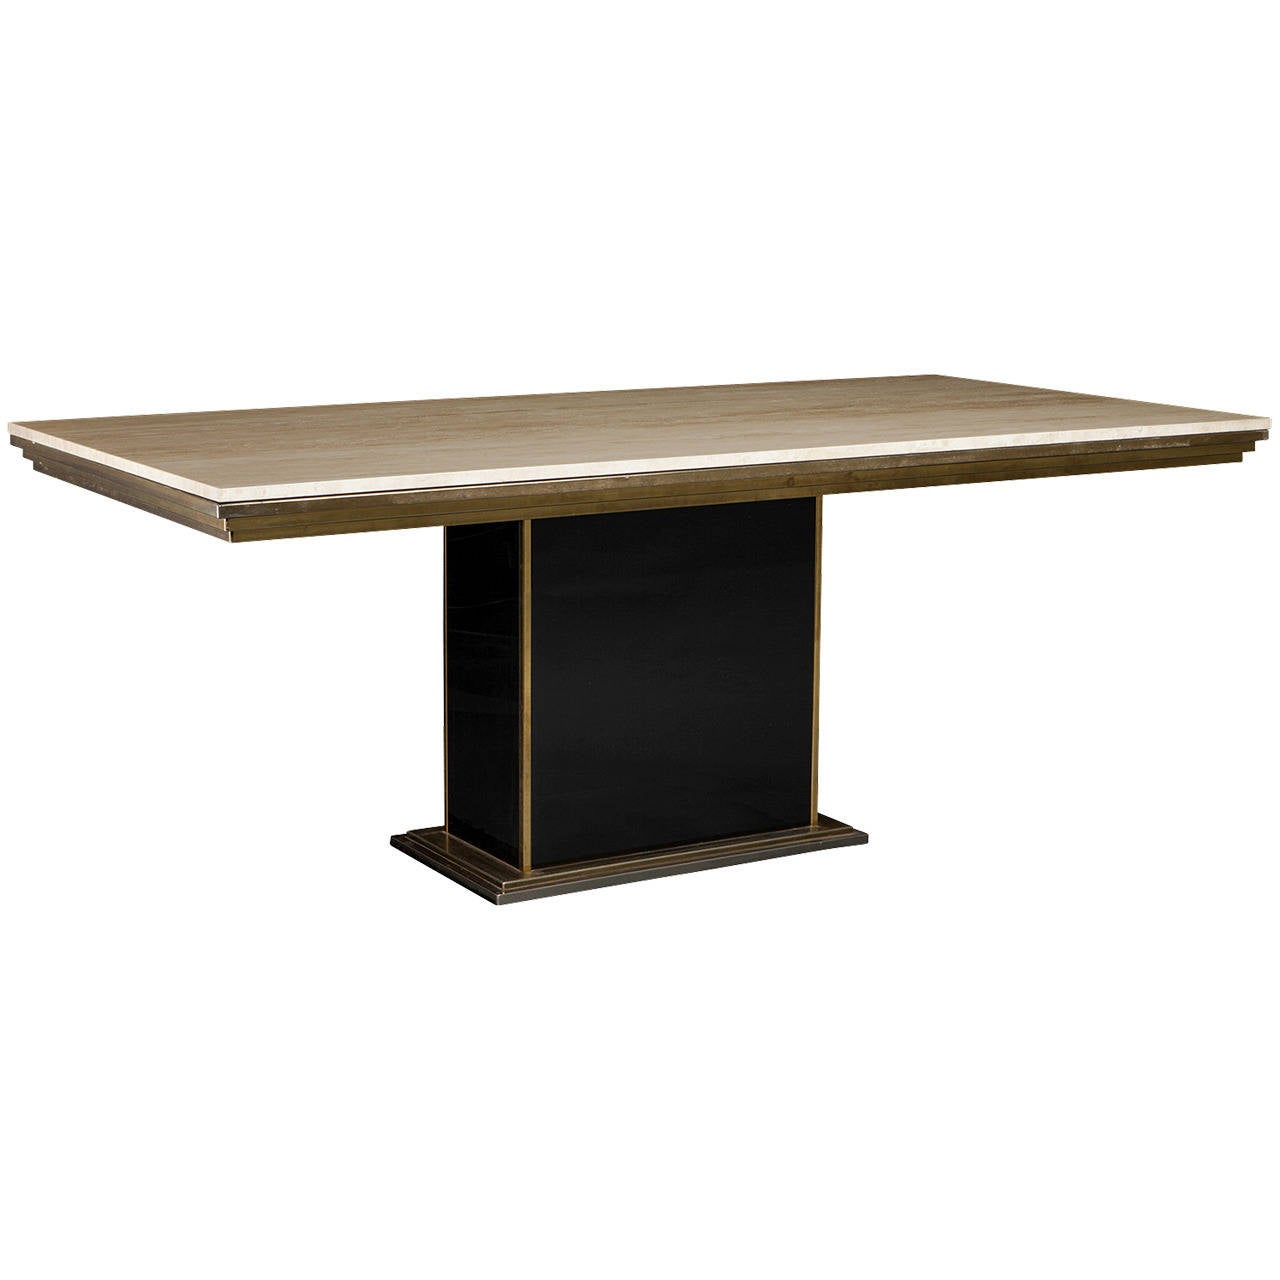 Travertine marble dining table at 1stdibs for Modern marble dining table